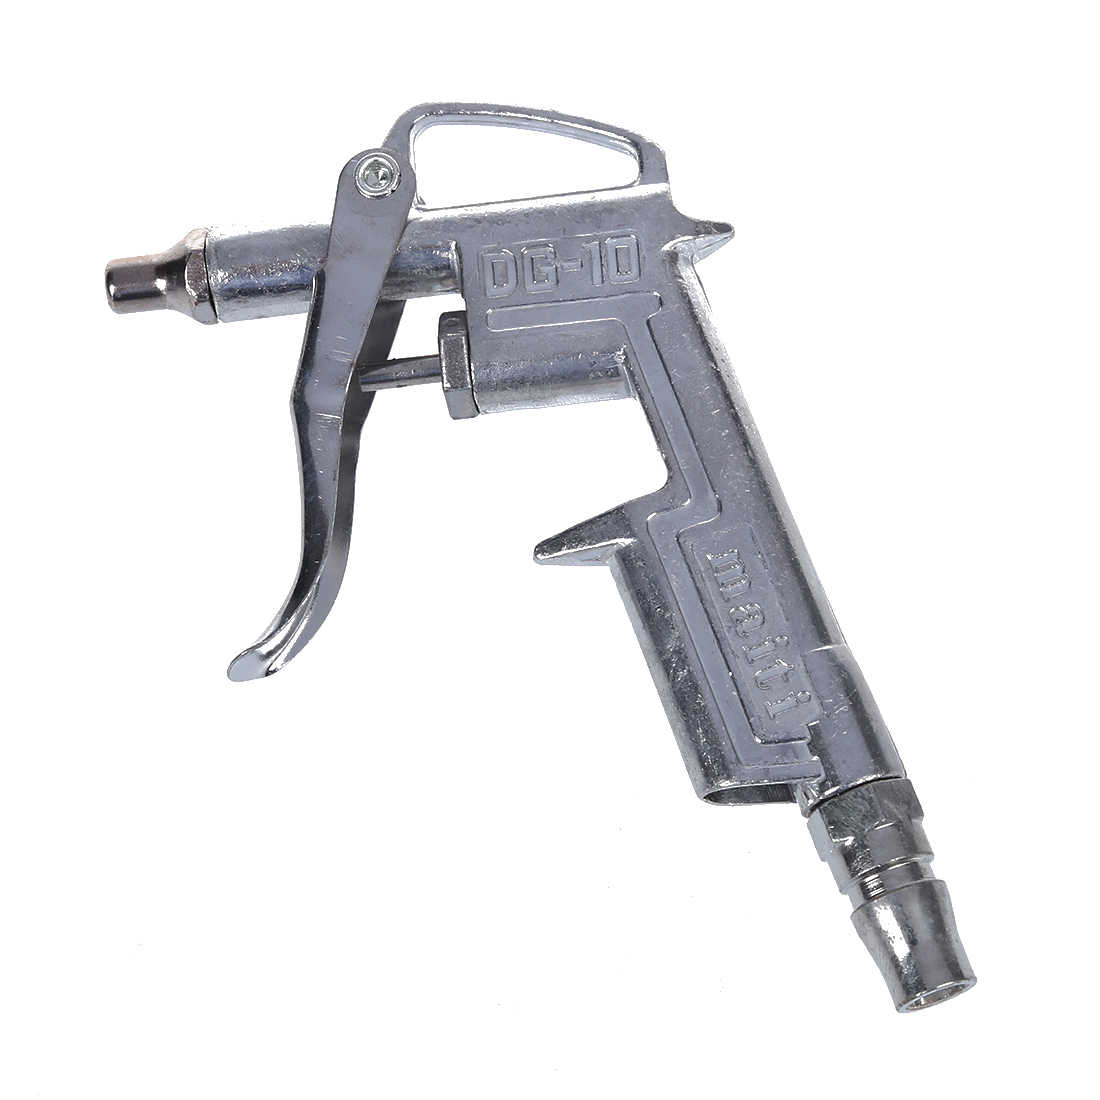 Hot! Dust Verwijderen Air Blow Gun Cleaning Tool Silver Tone